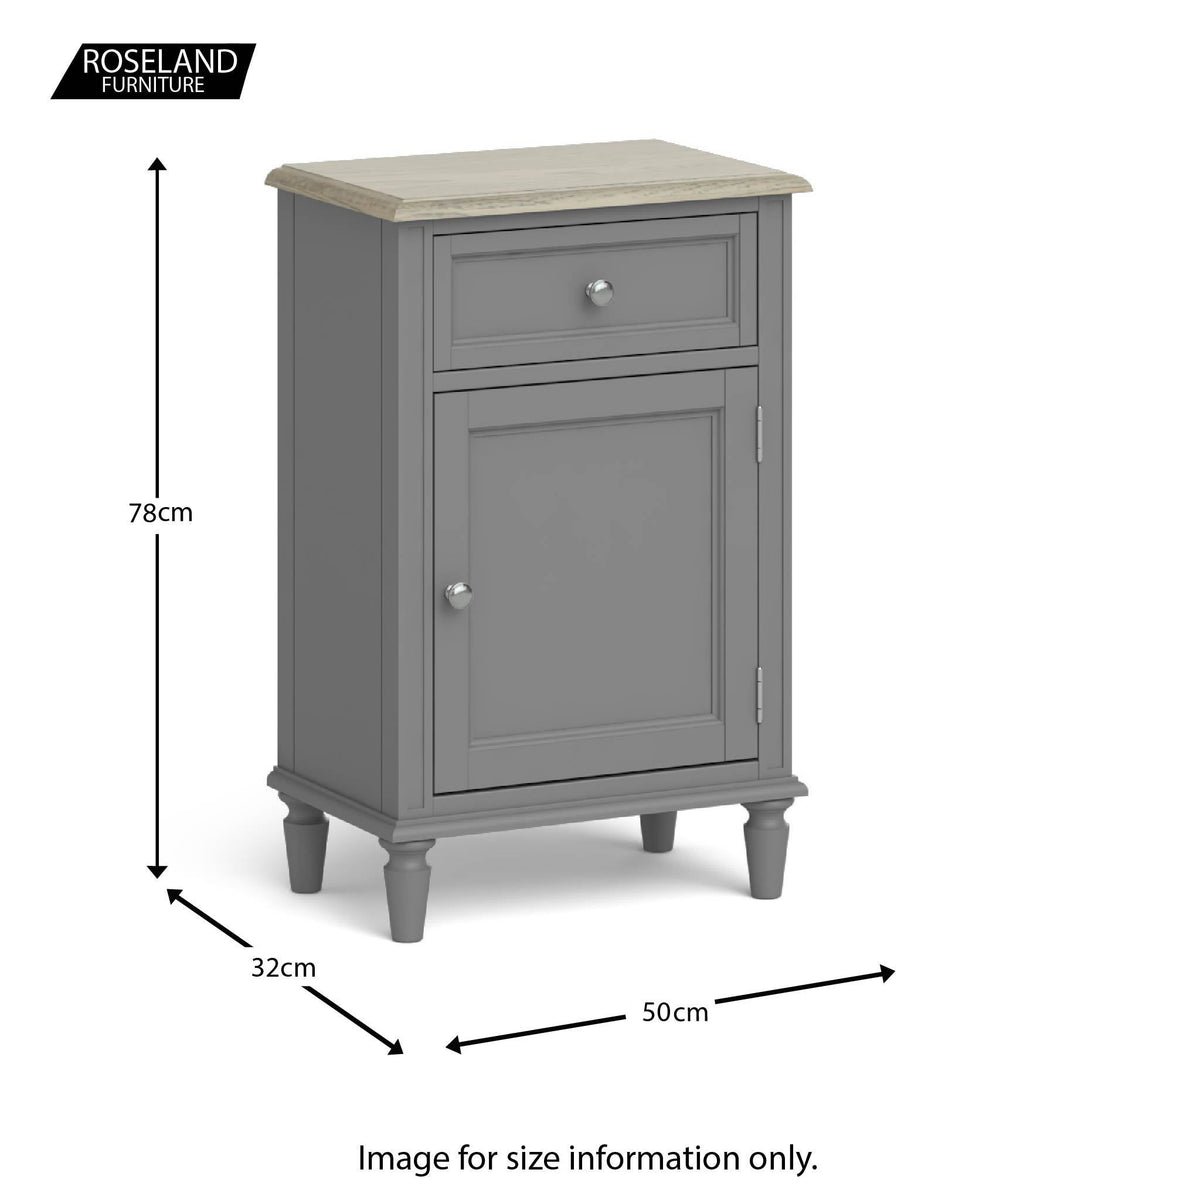 Dimensions for The Mulsanne Grey French Style Hallway Telephone Cabinet